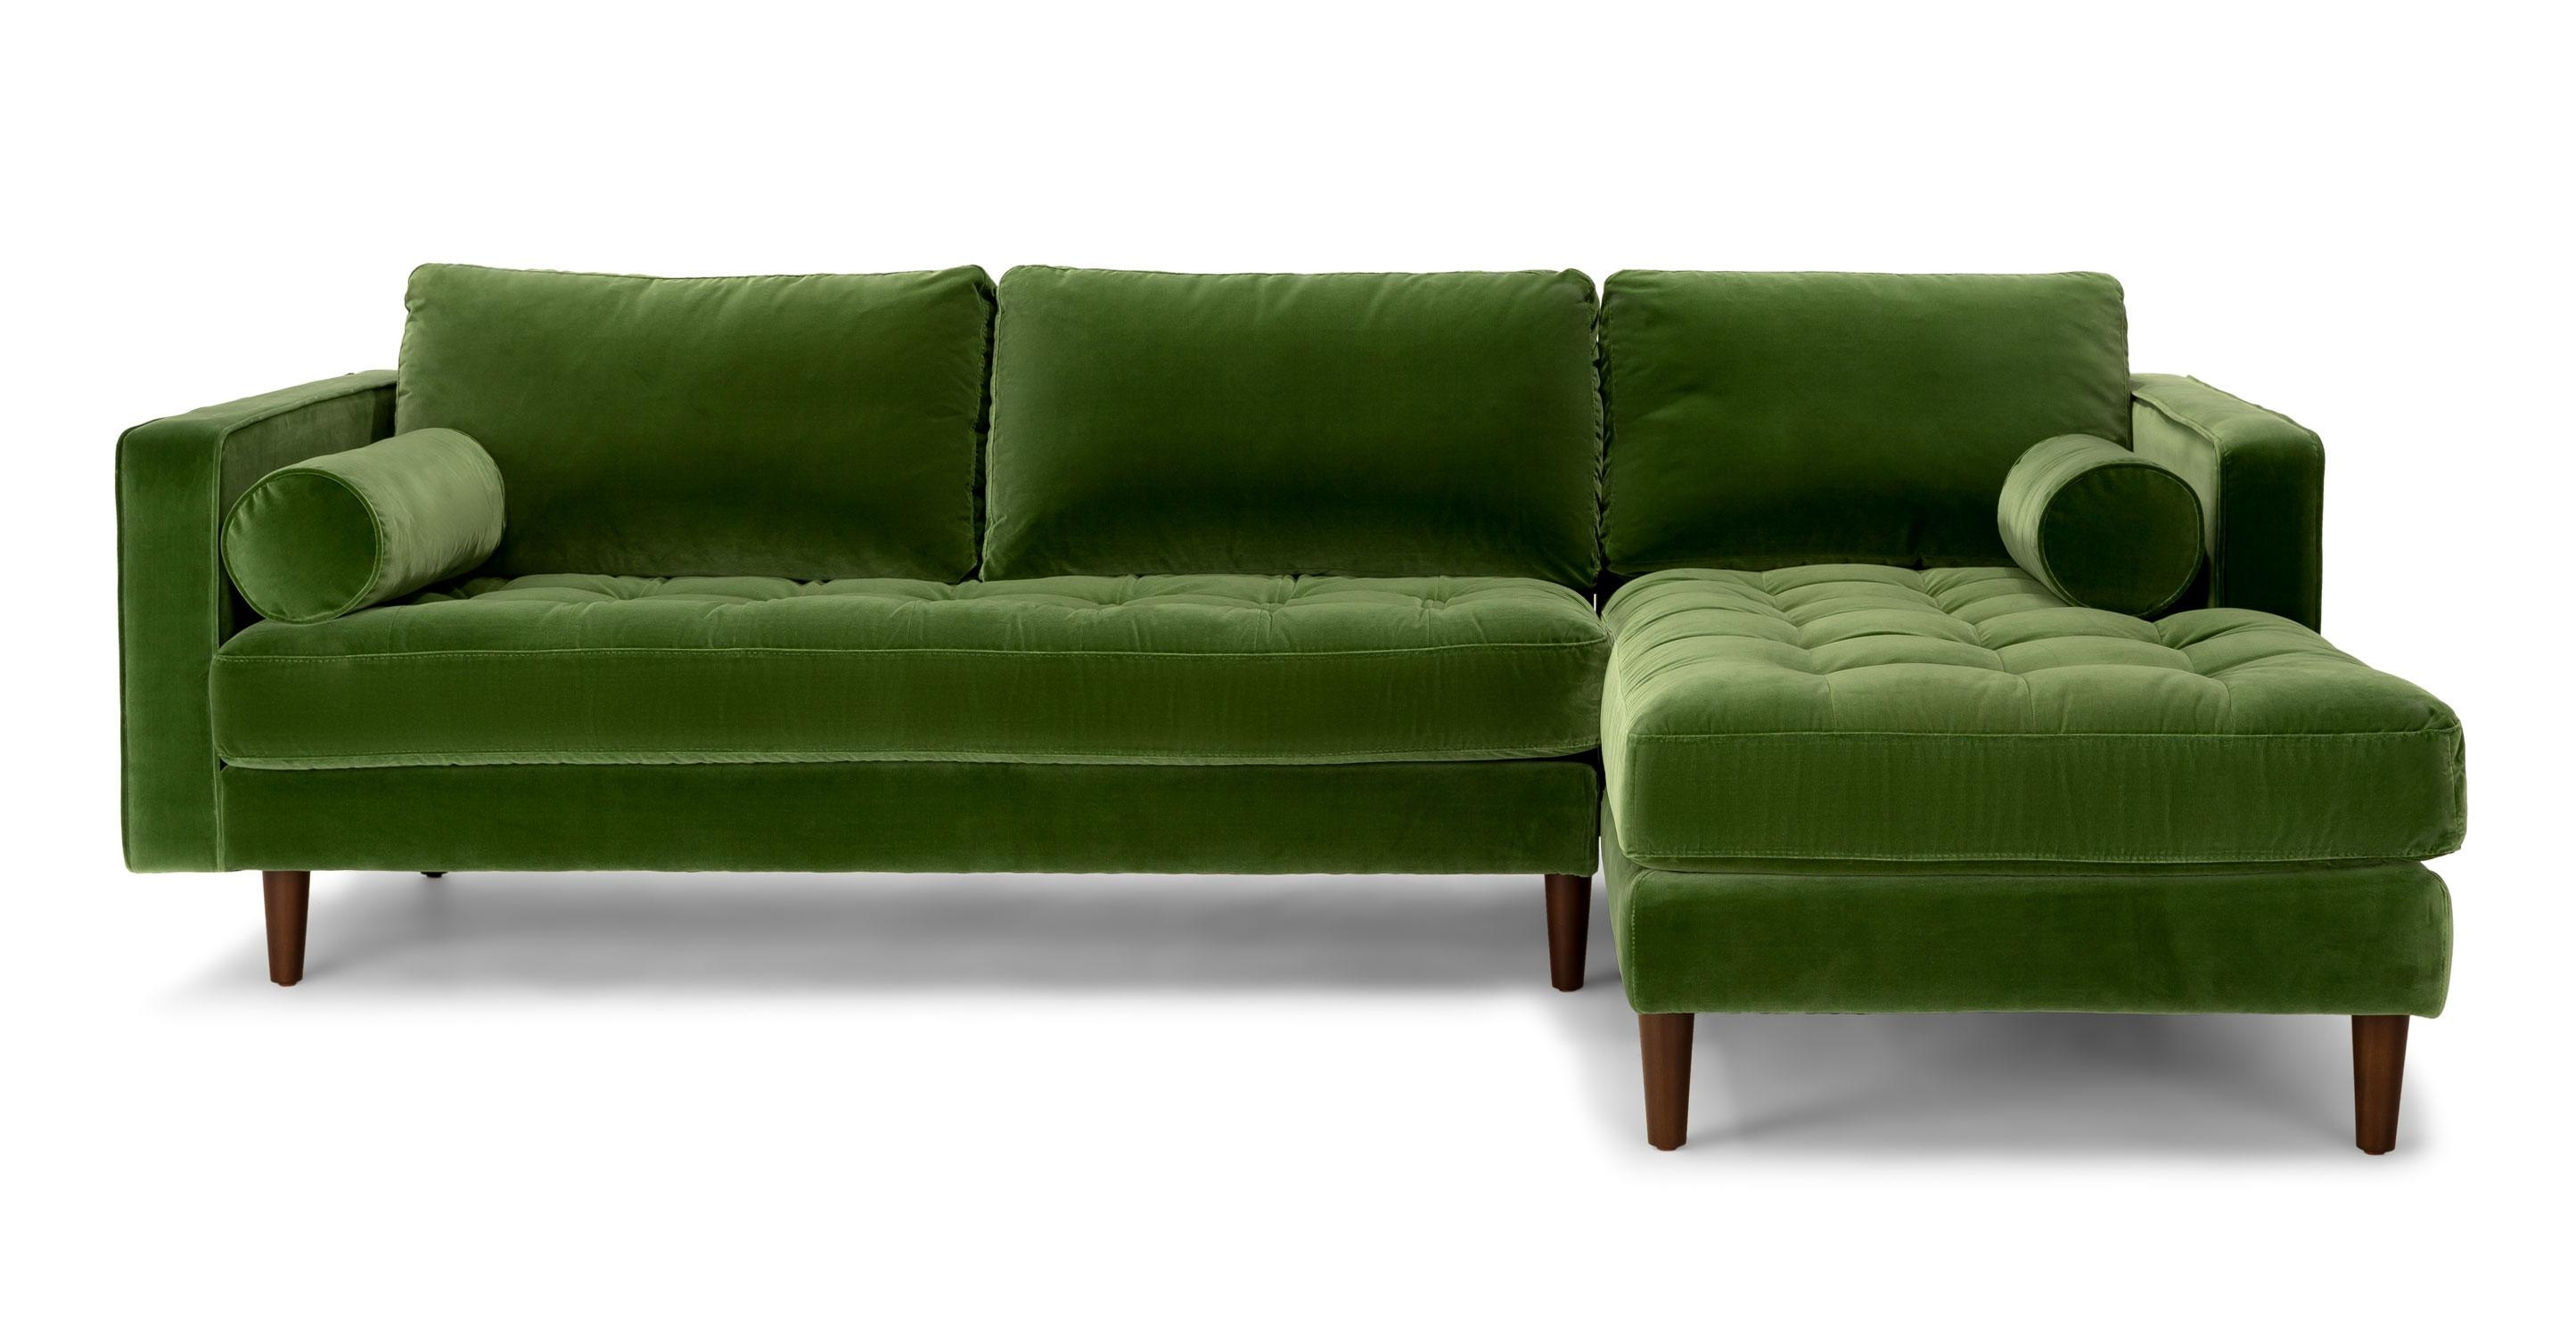 Green Sectional Sofa | Demand Sofas Set Regarding Green Sectional Sofa (Image 6 of 15)